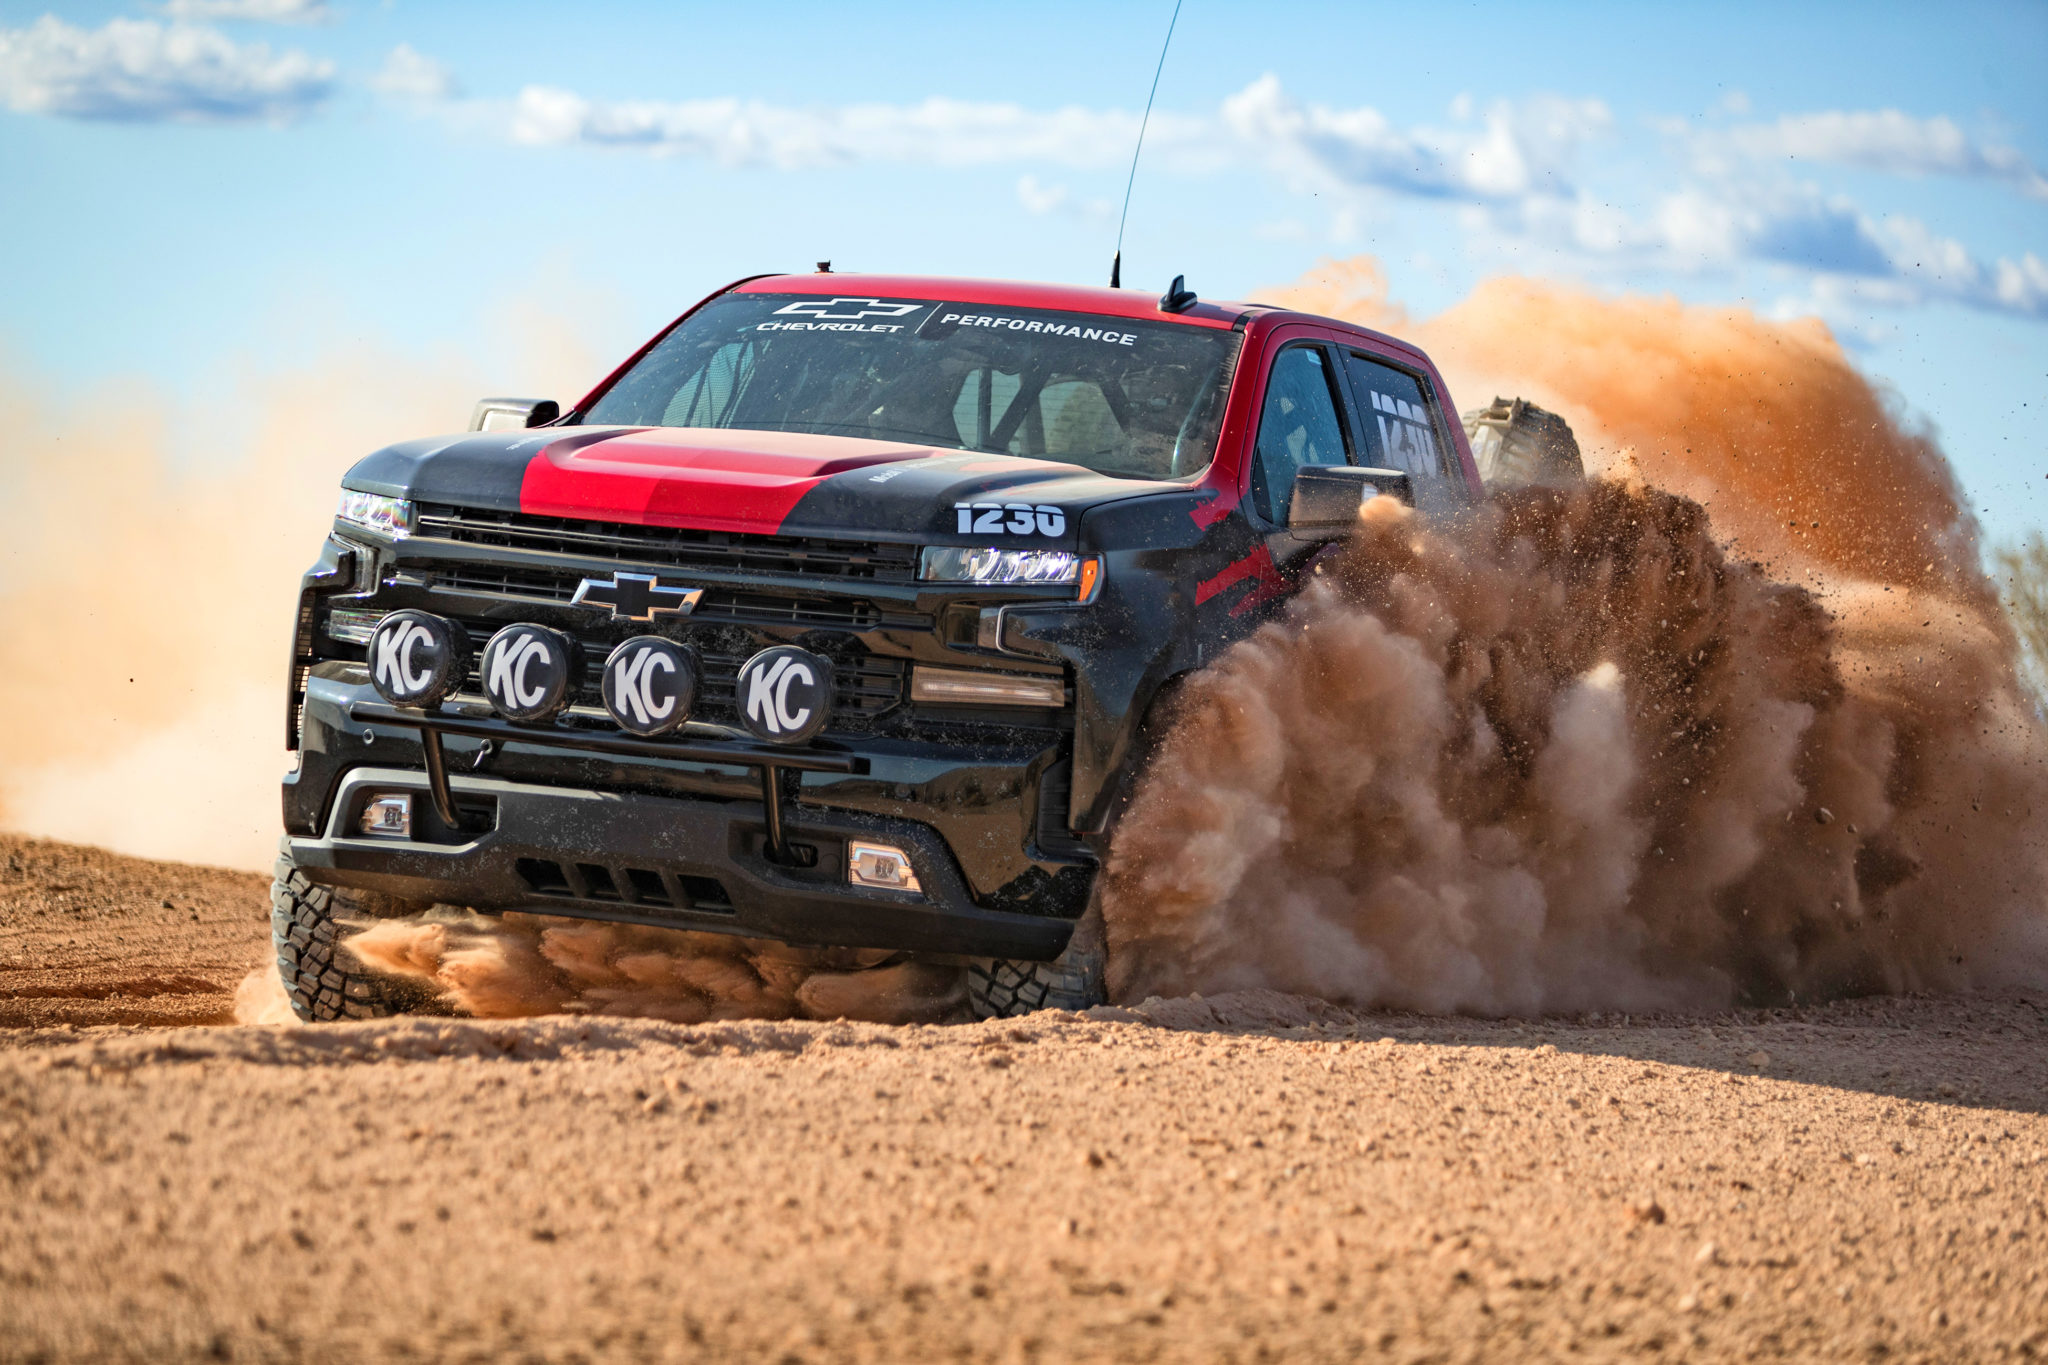 Racing improves the breed: Chevrolet Silverado to make off-road racing debut.